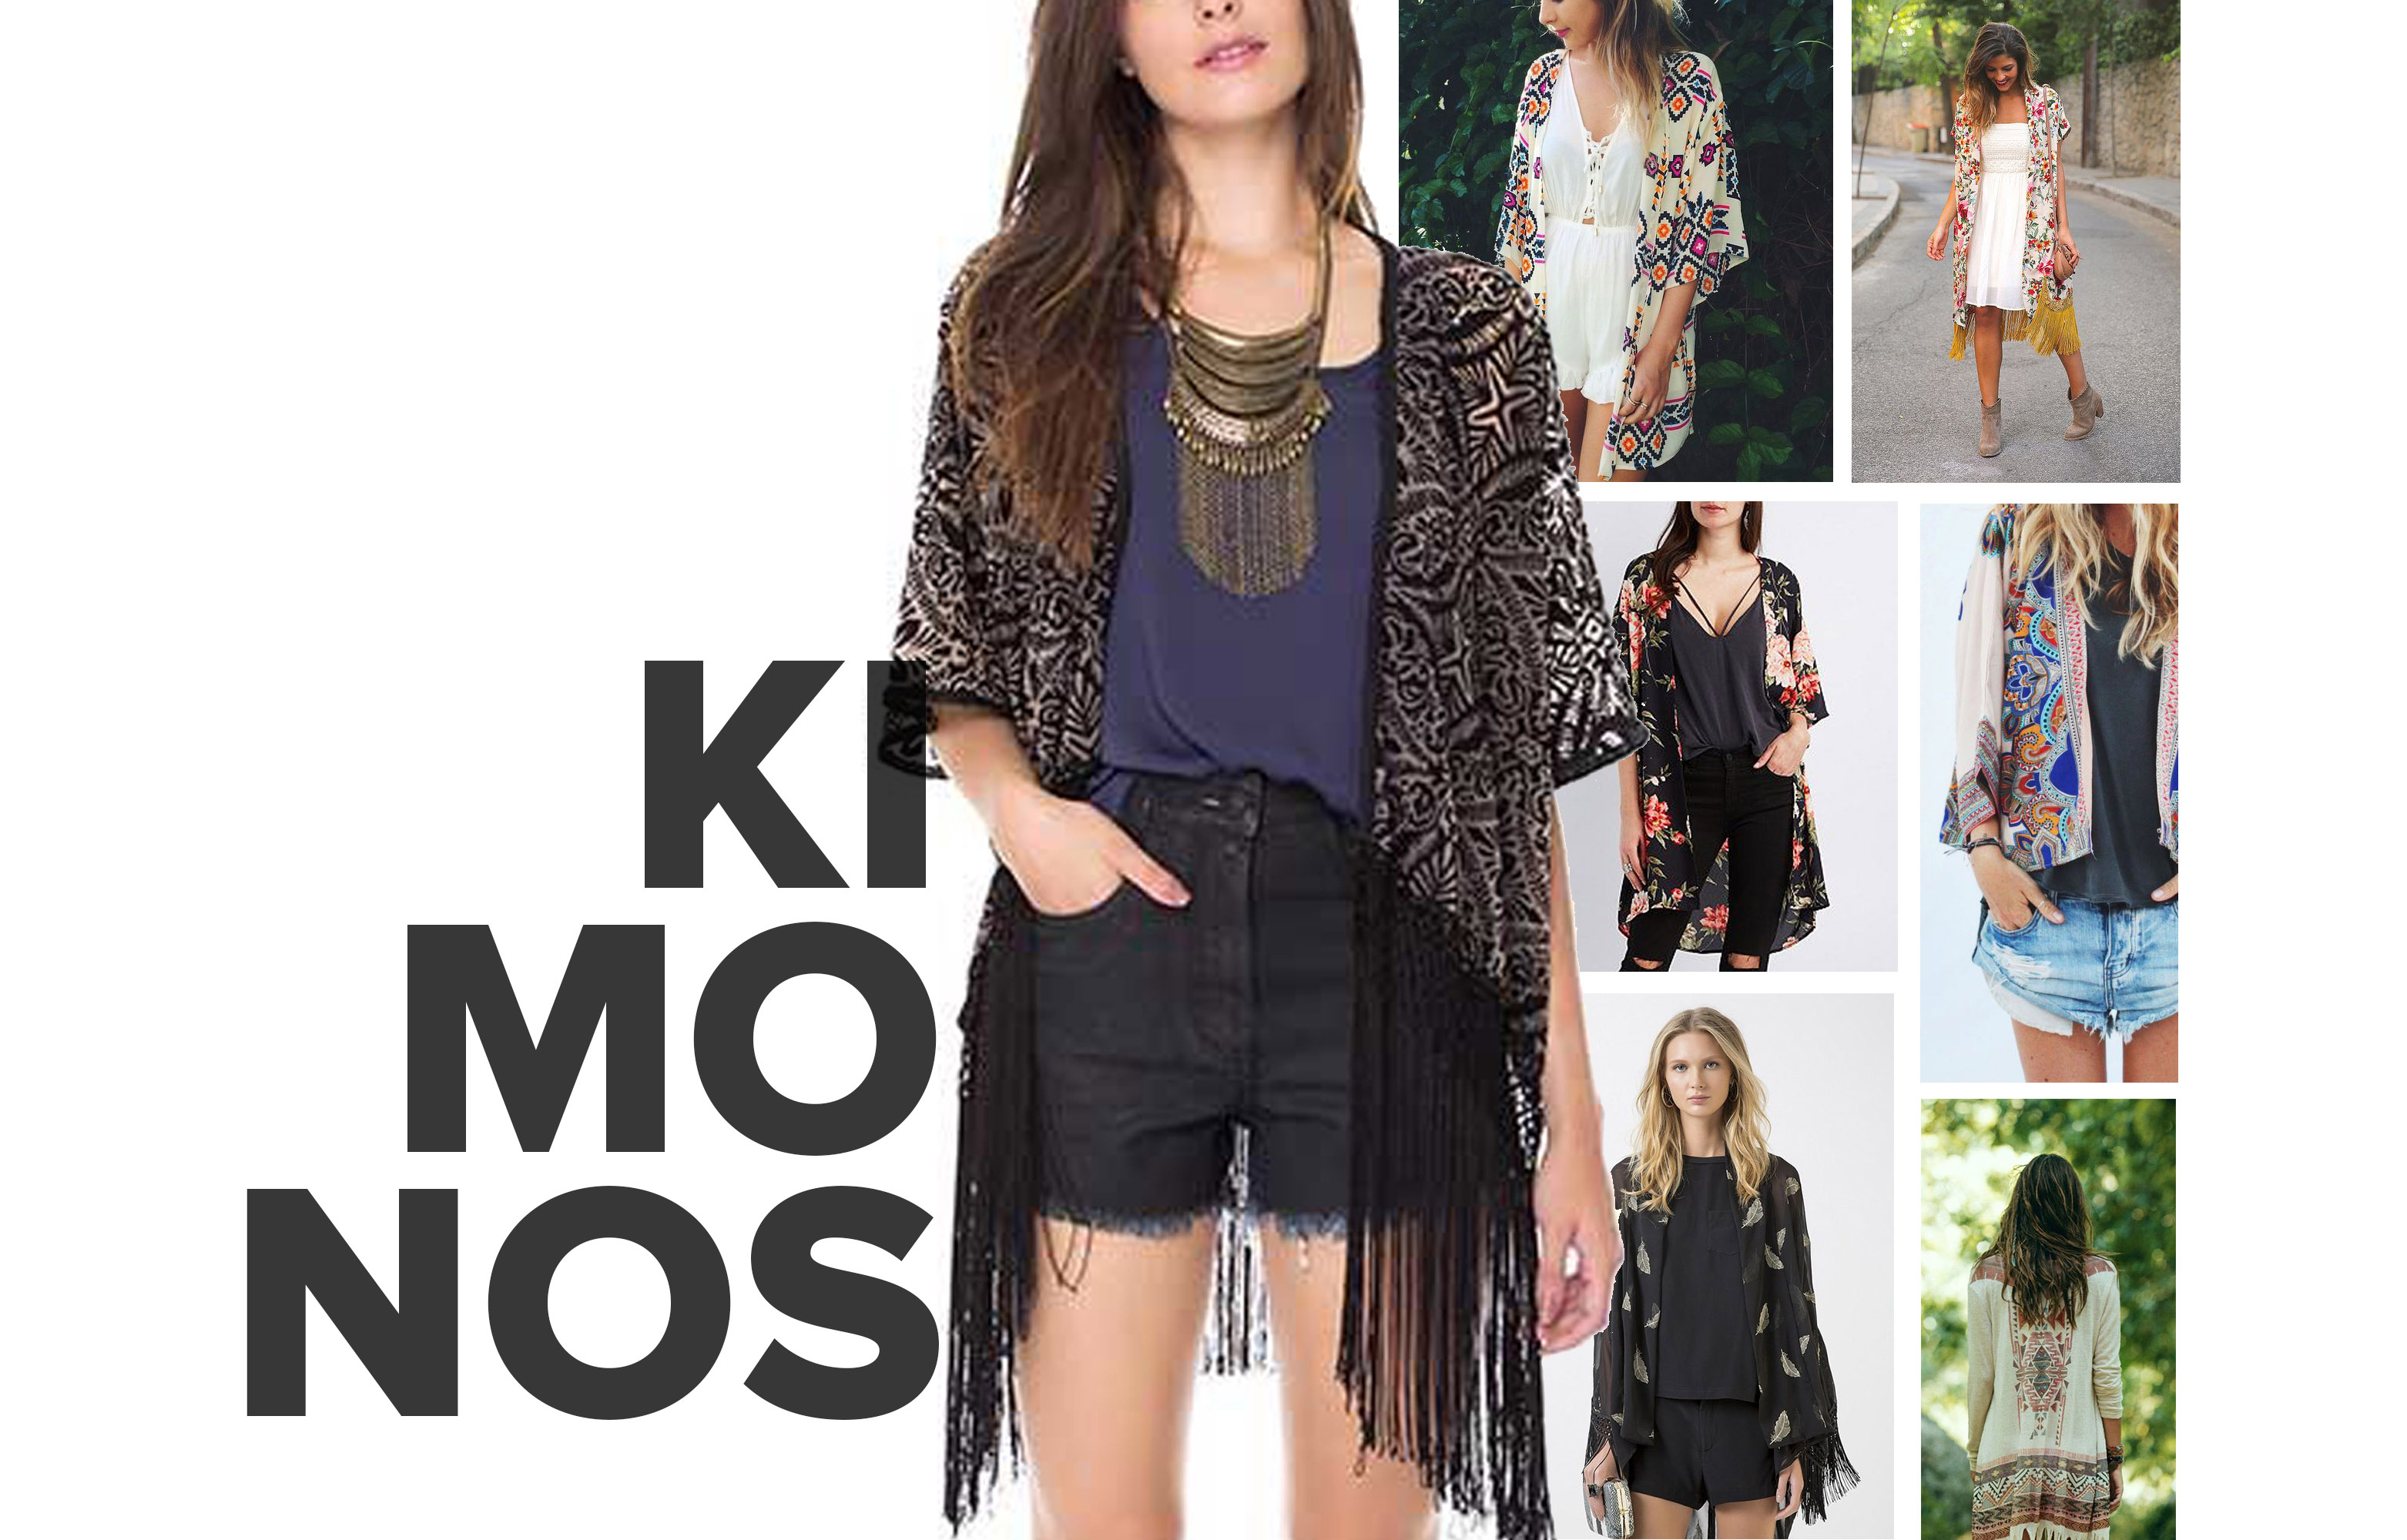 154.25_shop_all_bras_blog_quinzena_2_nov17_kimonos